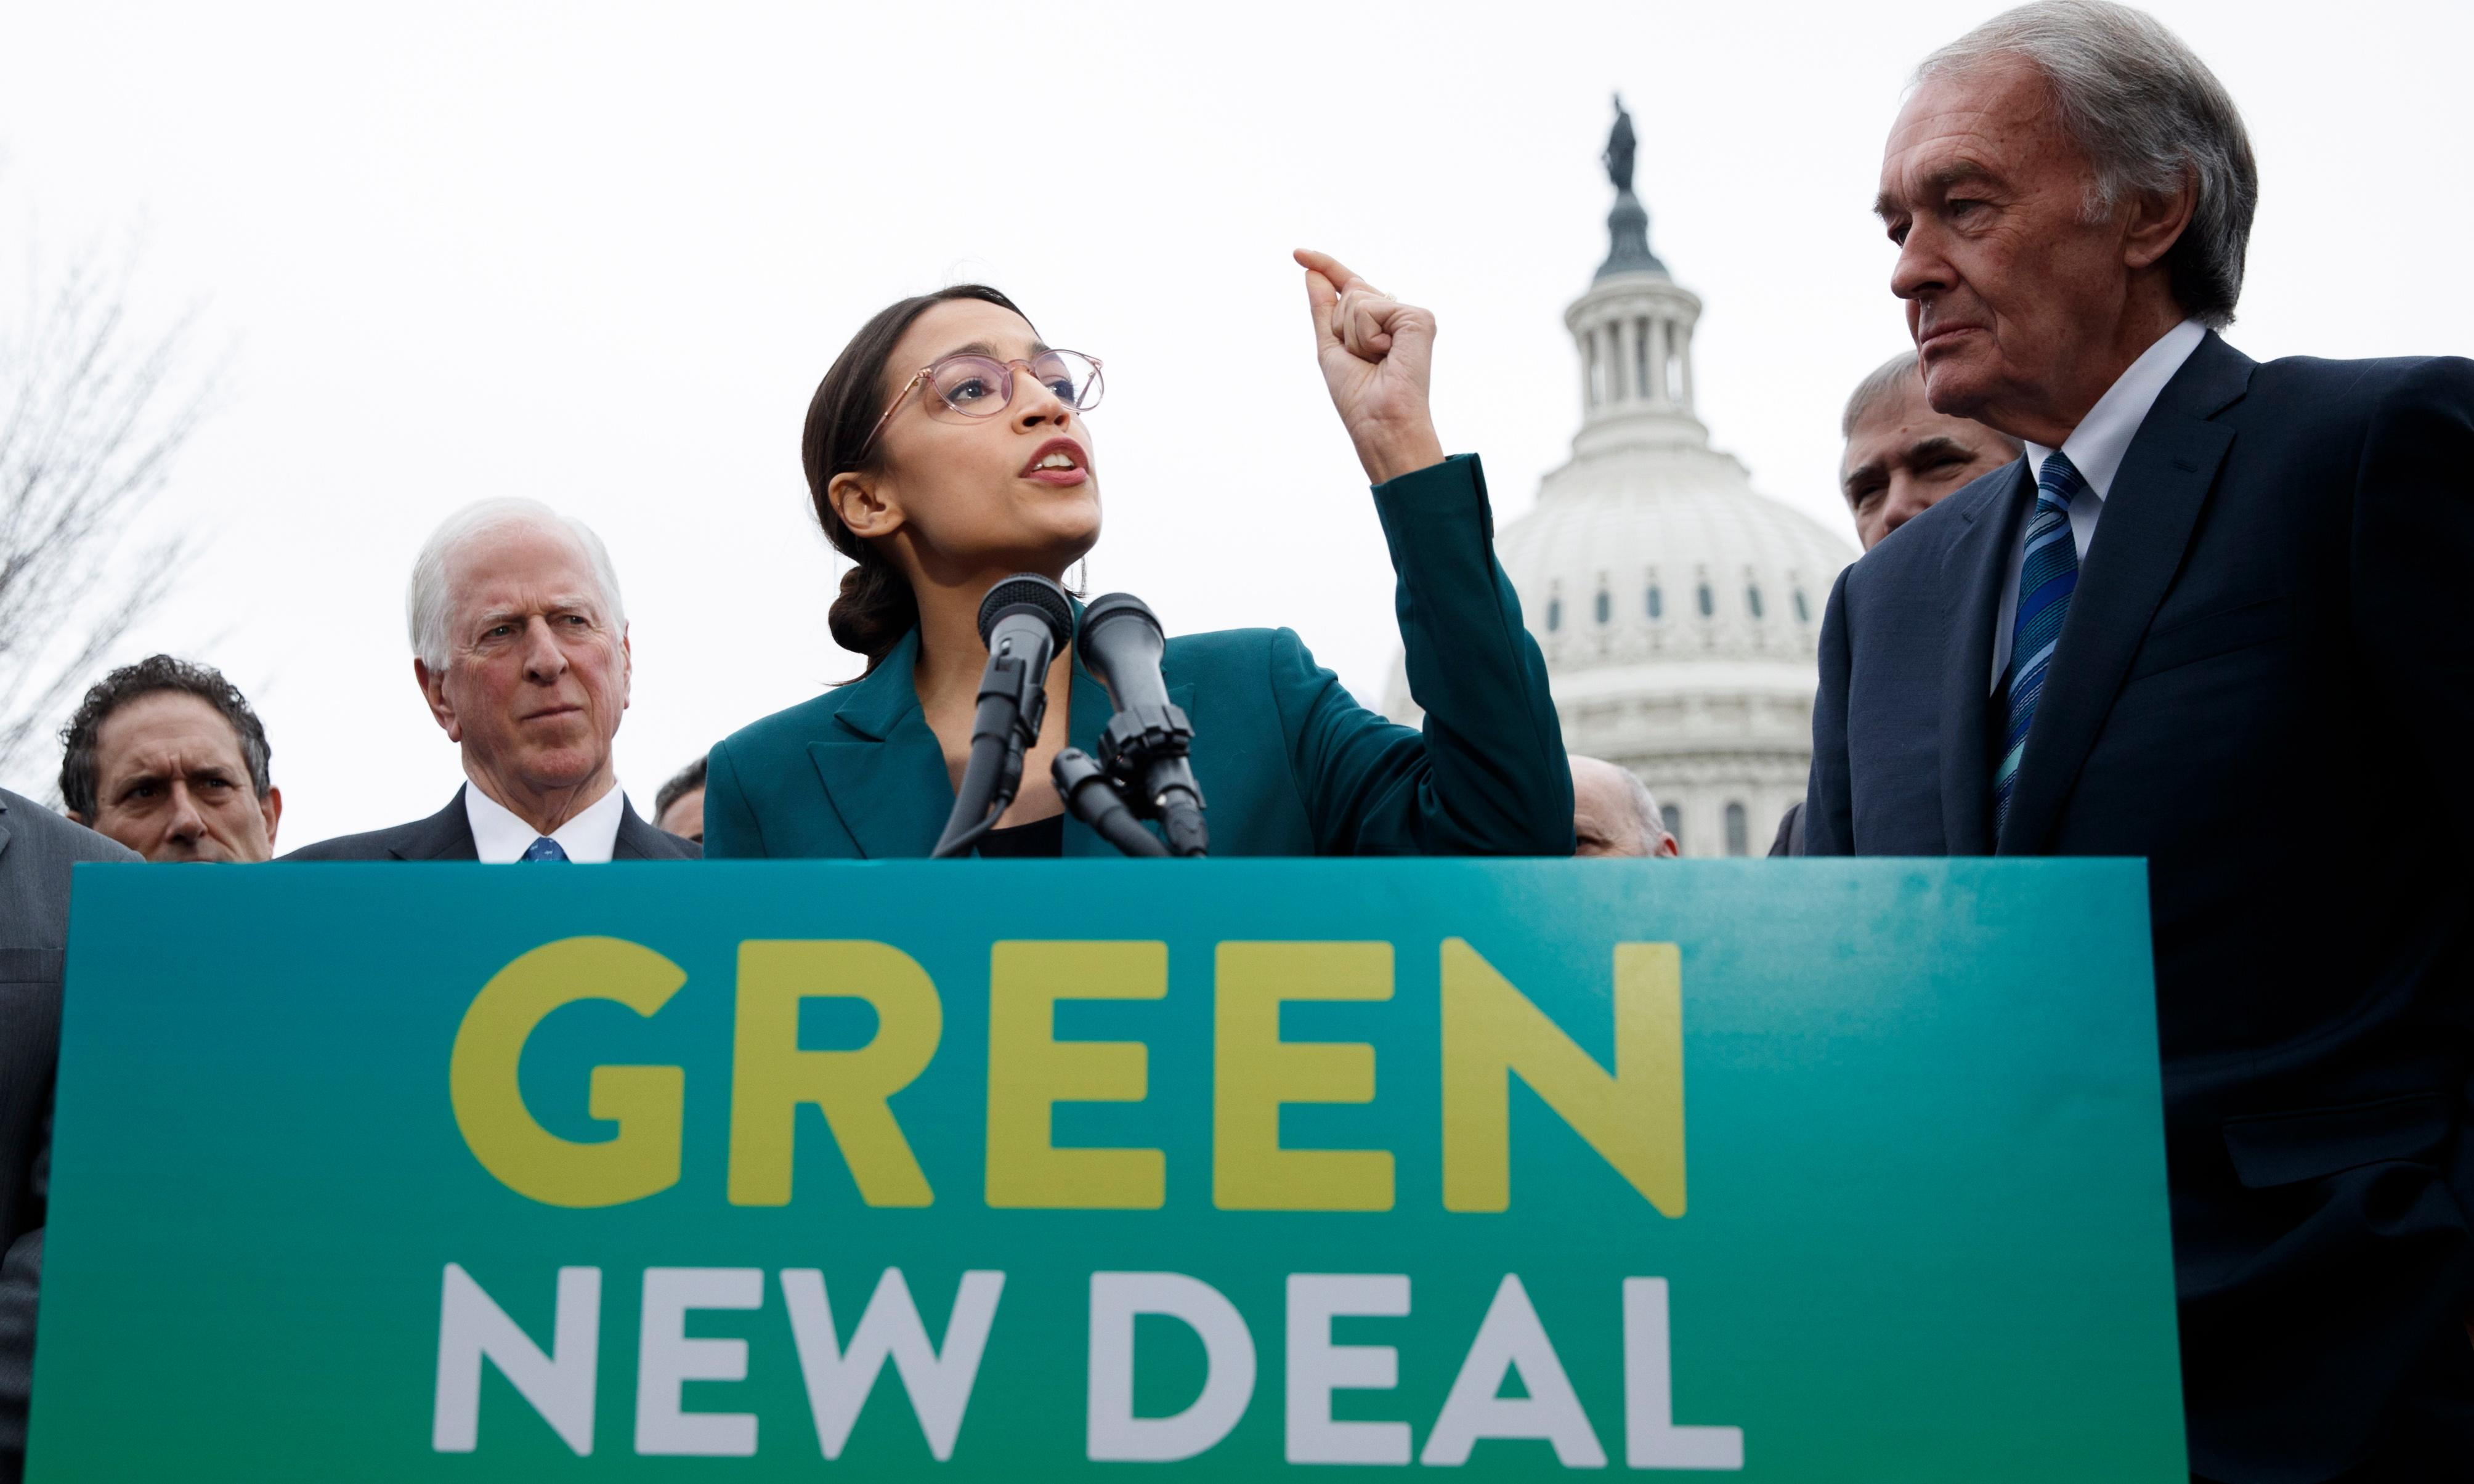 The Green New Deal doesn't just help climate. It's also a public health new deal